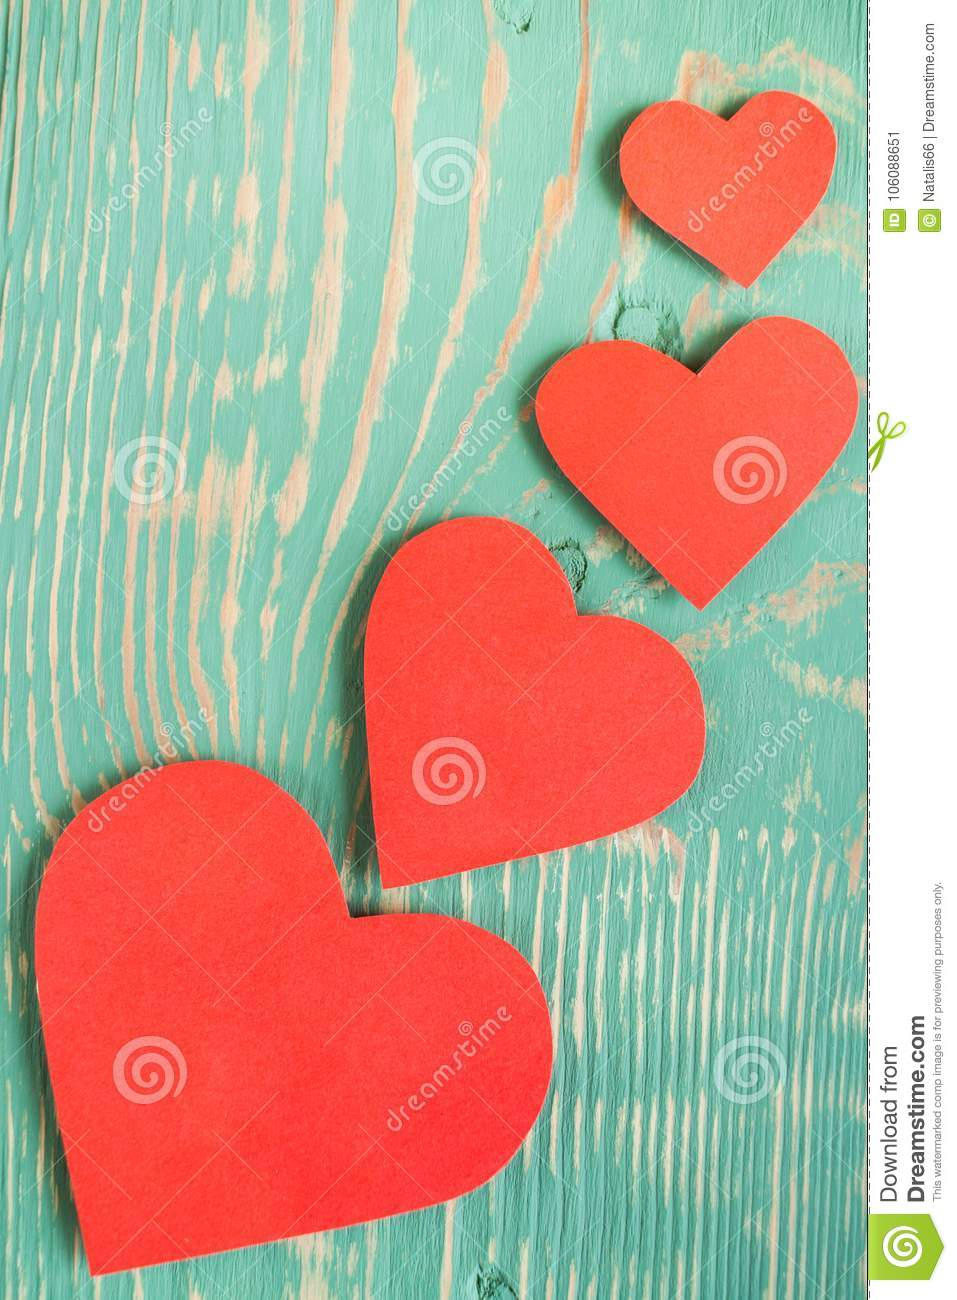 Several red paper hearts on light green painted textured with squiggly stripes wooden table.